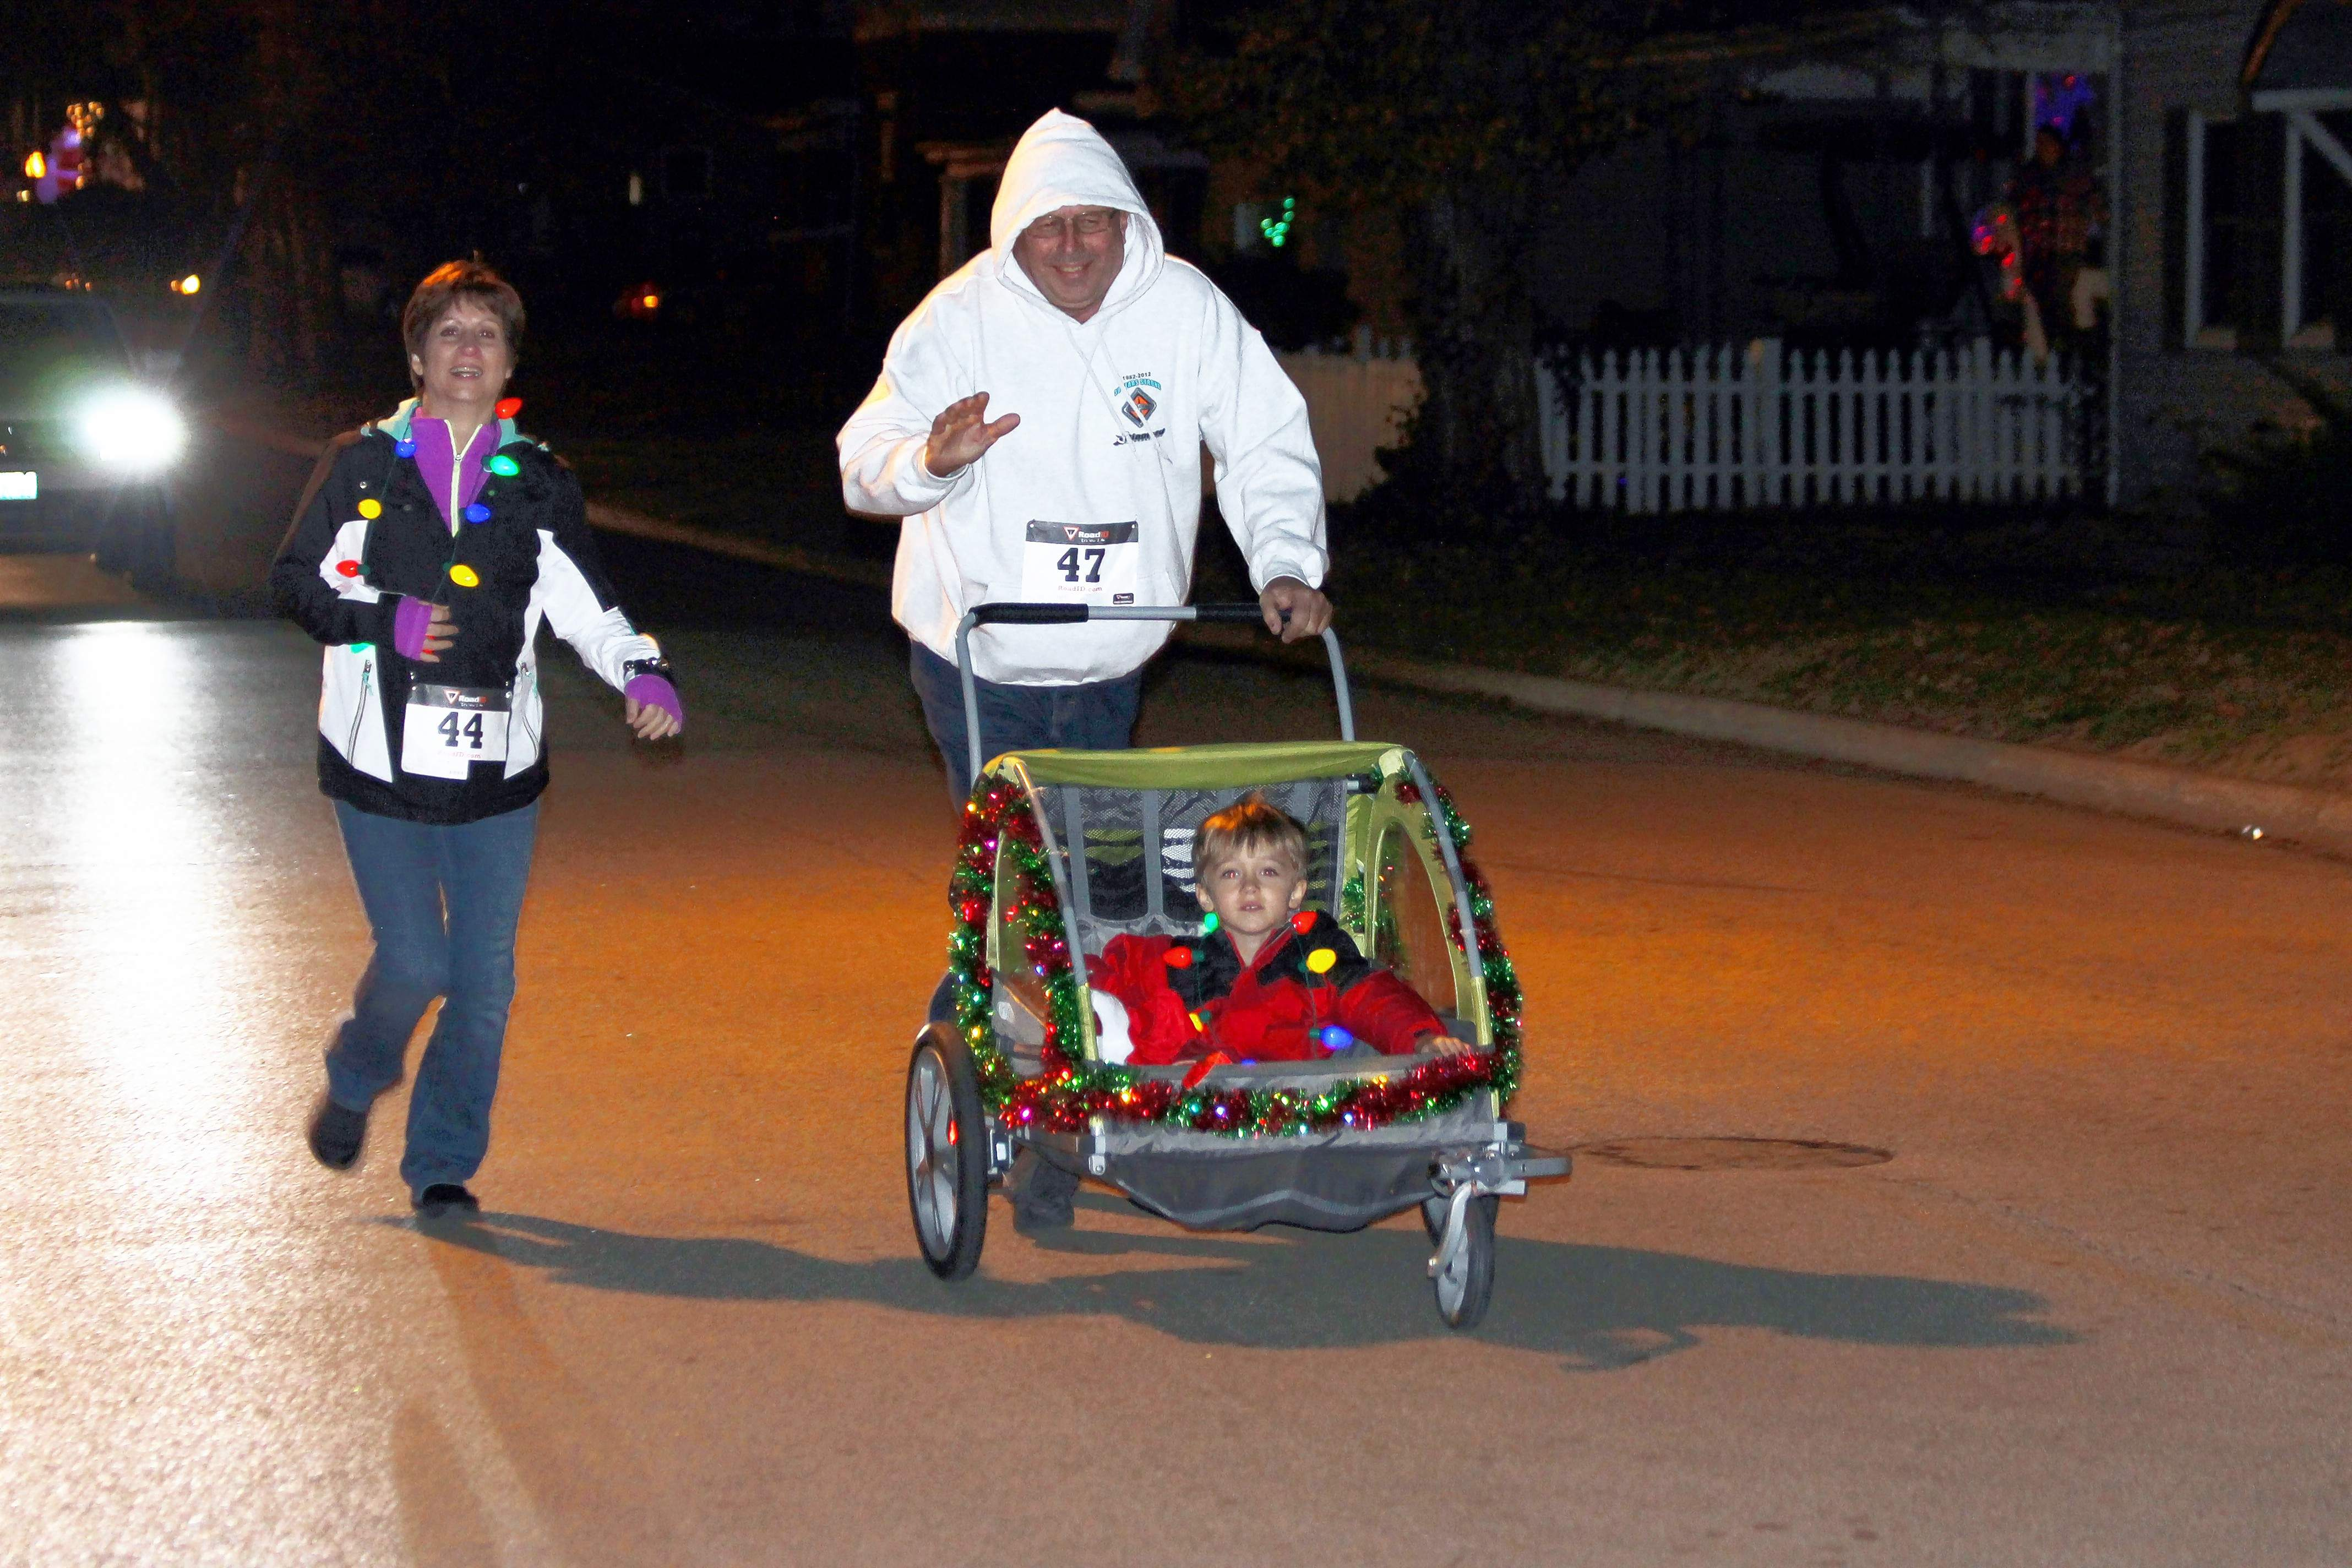 People participate in the Jingle Bell Fun Run that preceded the Lighted Parade.